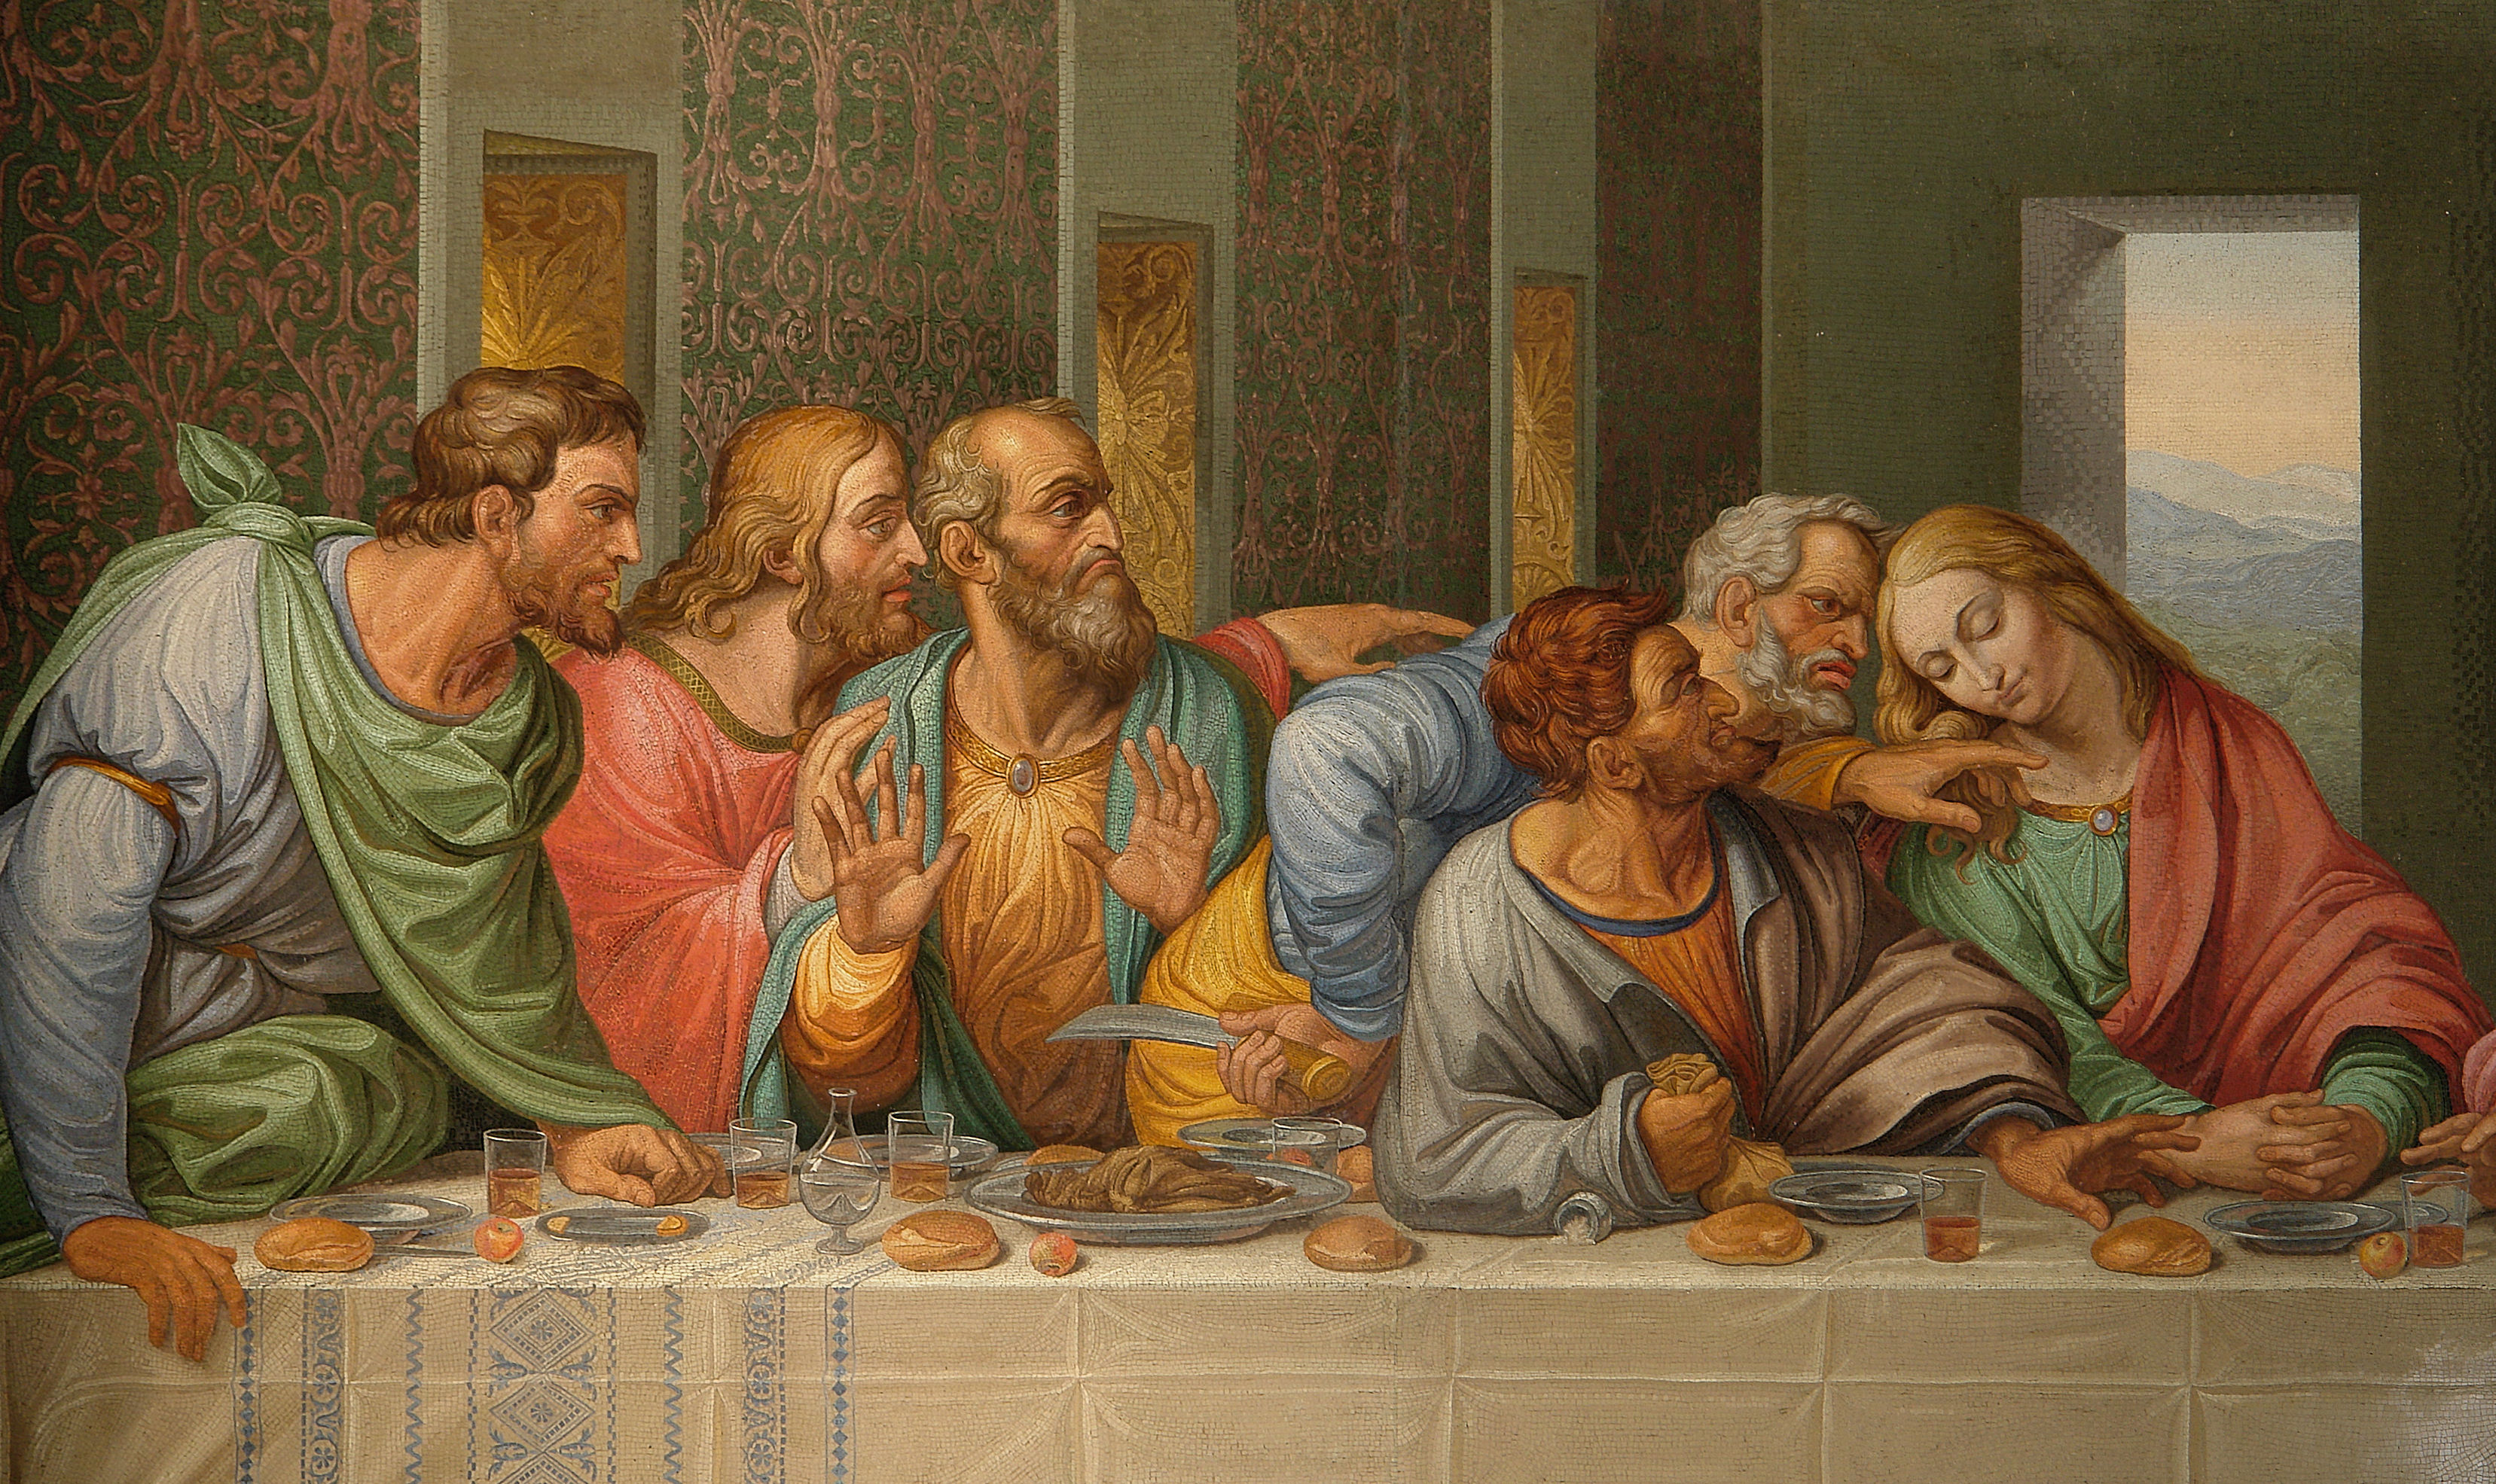 Cuadro De Leonardo Da Vinci La Ultima Cena File Detail Of The Da Vinci 39s The Last Supper By Giacomo